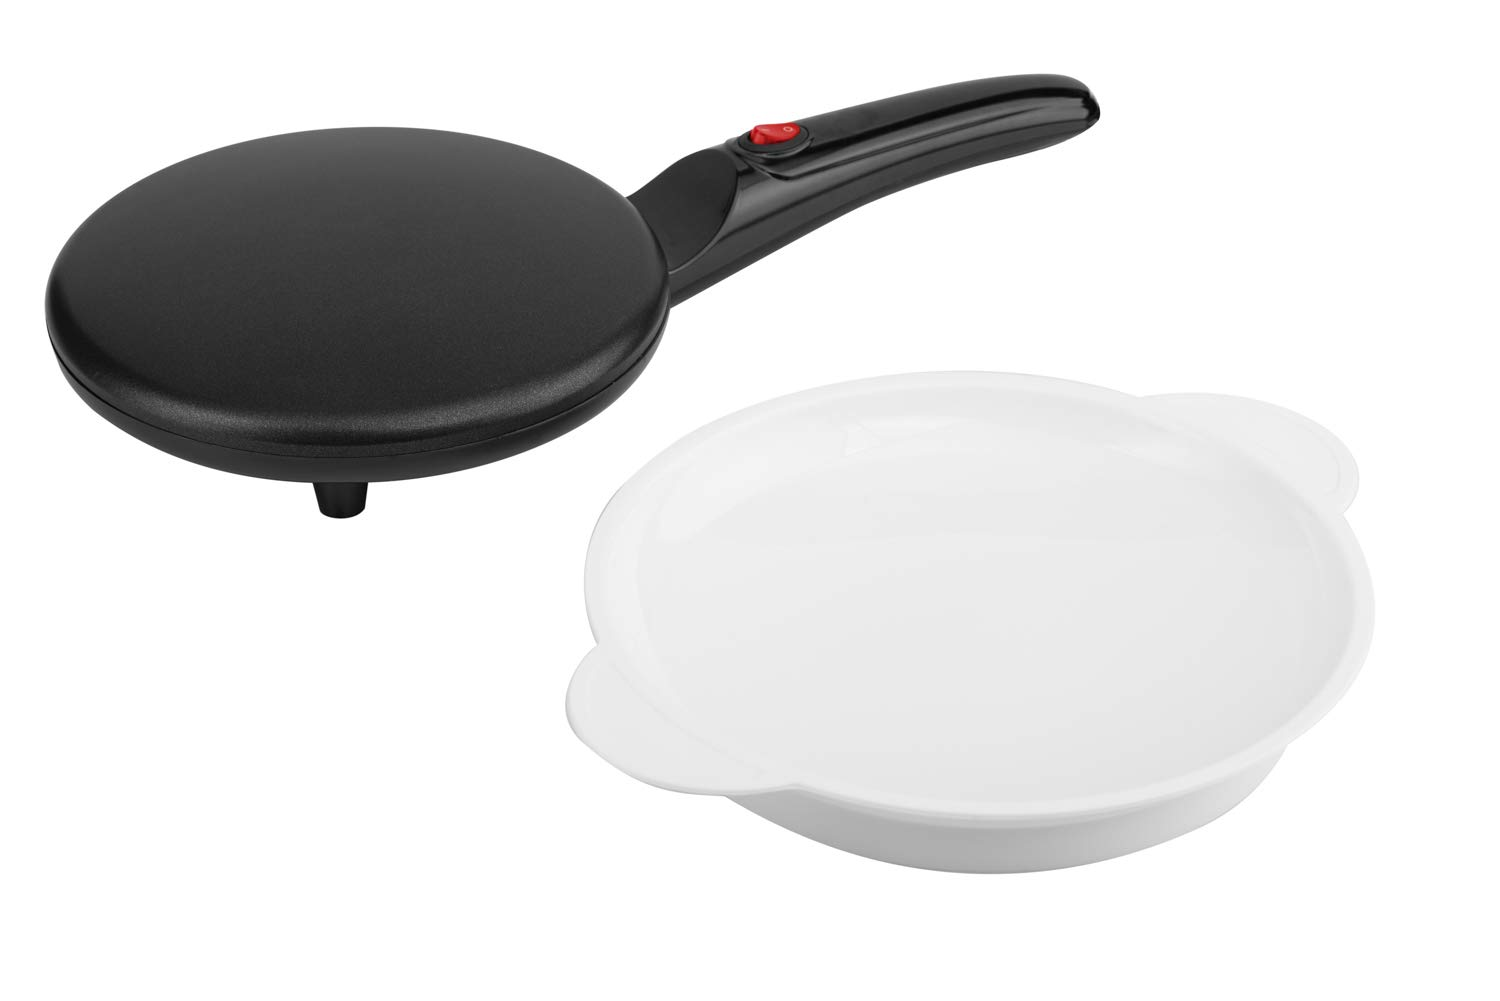 "Moss & Stone 8"" Electric Crepe Maker I Pan Style I Hot Plate Cooktop I ON/OFF Switch I Nonstick Coating I Automatic Temperature Control I Easy to use I Pancakes, Blintz, Chapati, Tortillas"